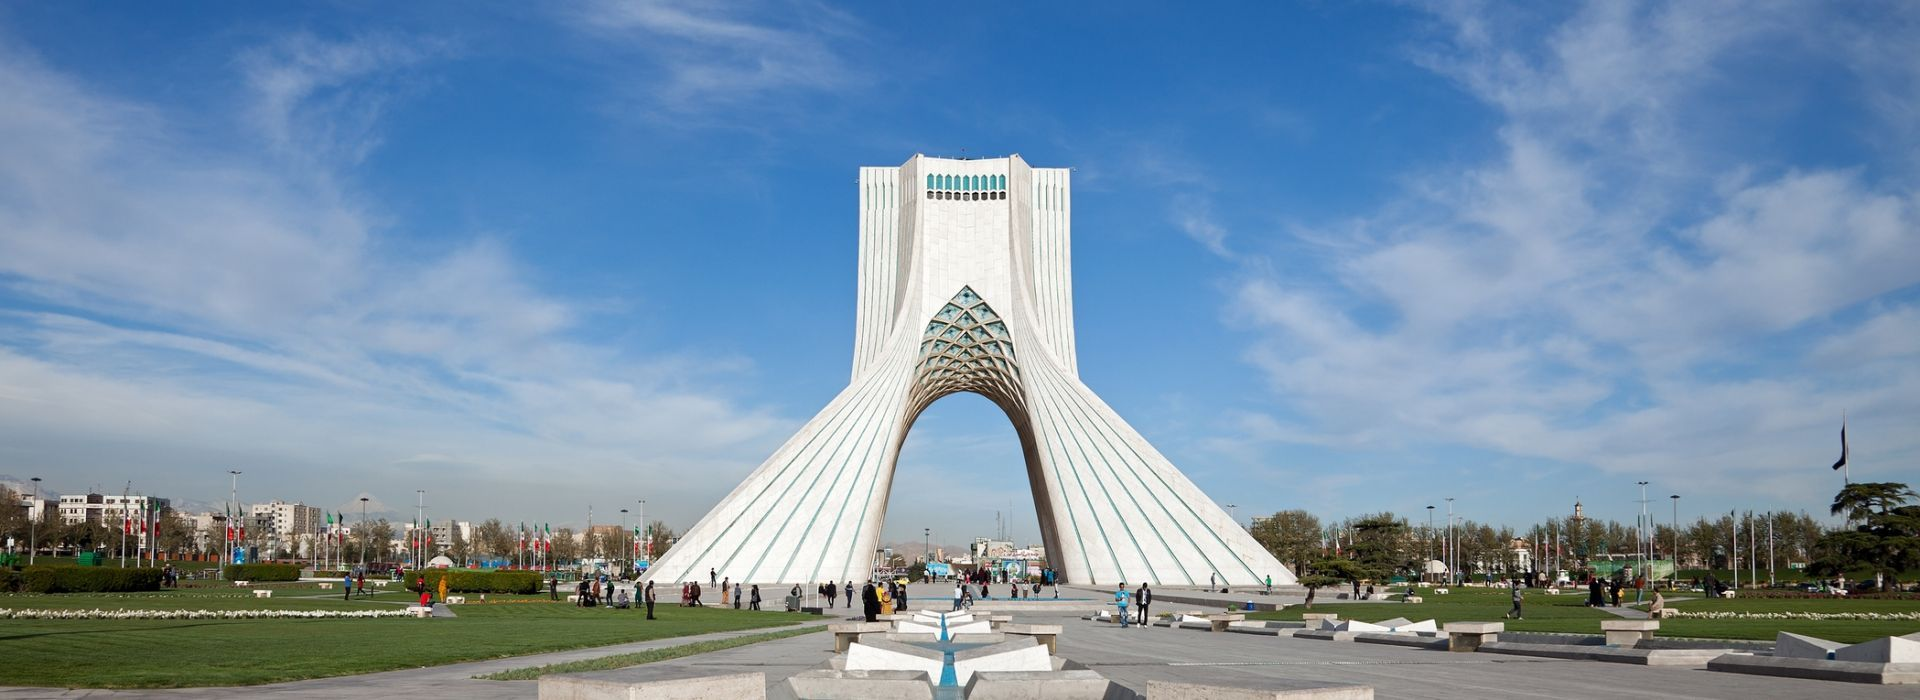 Sightseeing, attractions, culture and history Tours in Yazd